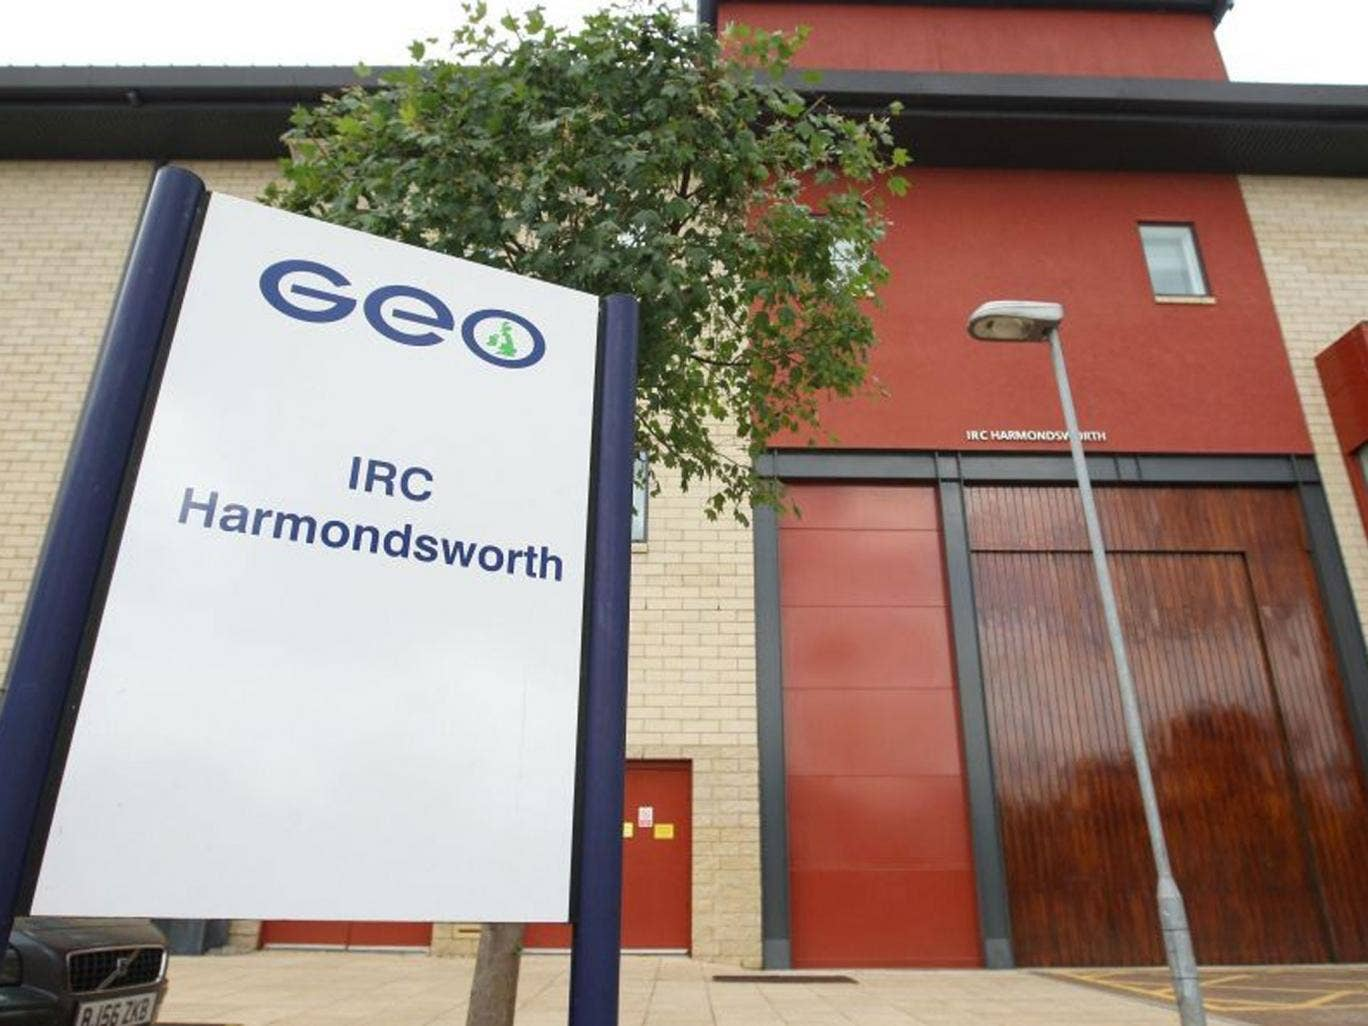 Harmondsworth IRC in West Drayton, where inspectors have revealed that an 84-year-old immigration detainee - who was suffering from dementia - was taken to hospital in handcuffs and died while still in restraints